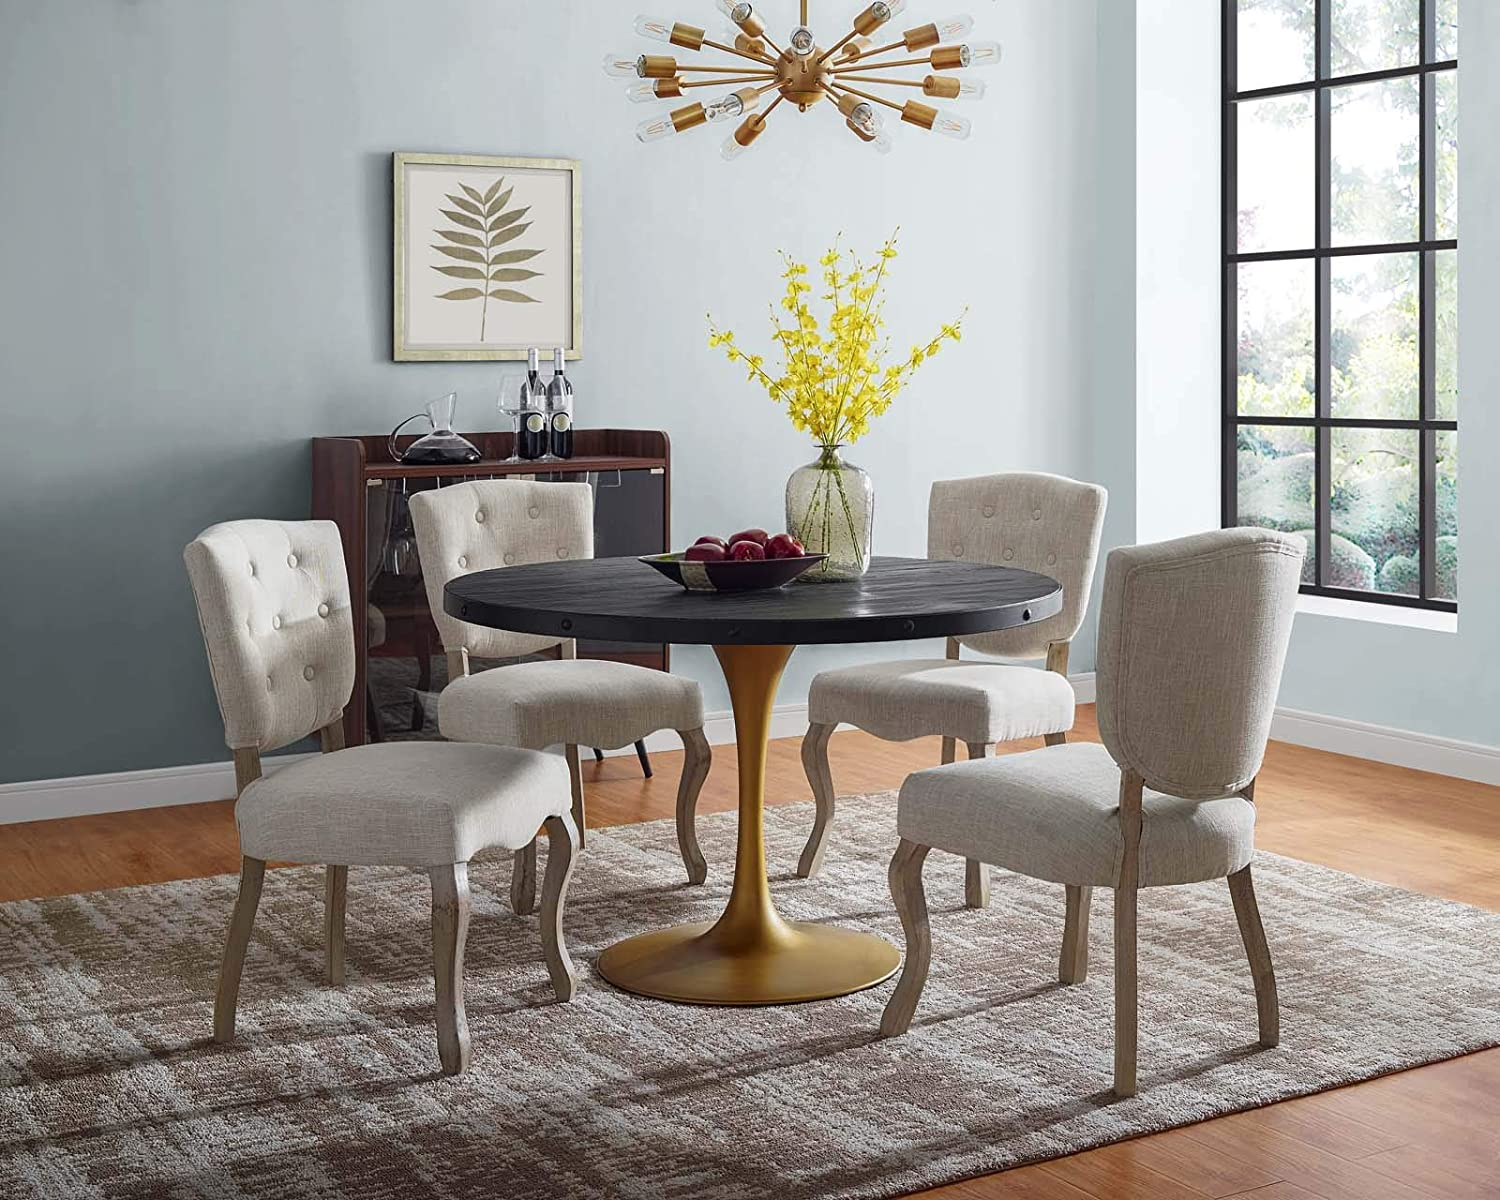 Amazon Com Modway Drive 48 Modern Farmhouse Dining Table With Round Pine Black Wood Top And Gold Steel Base In Black Gold Tables